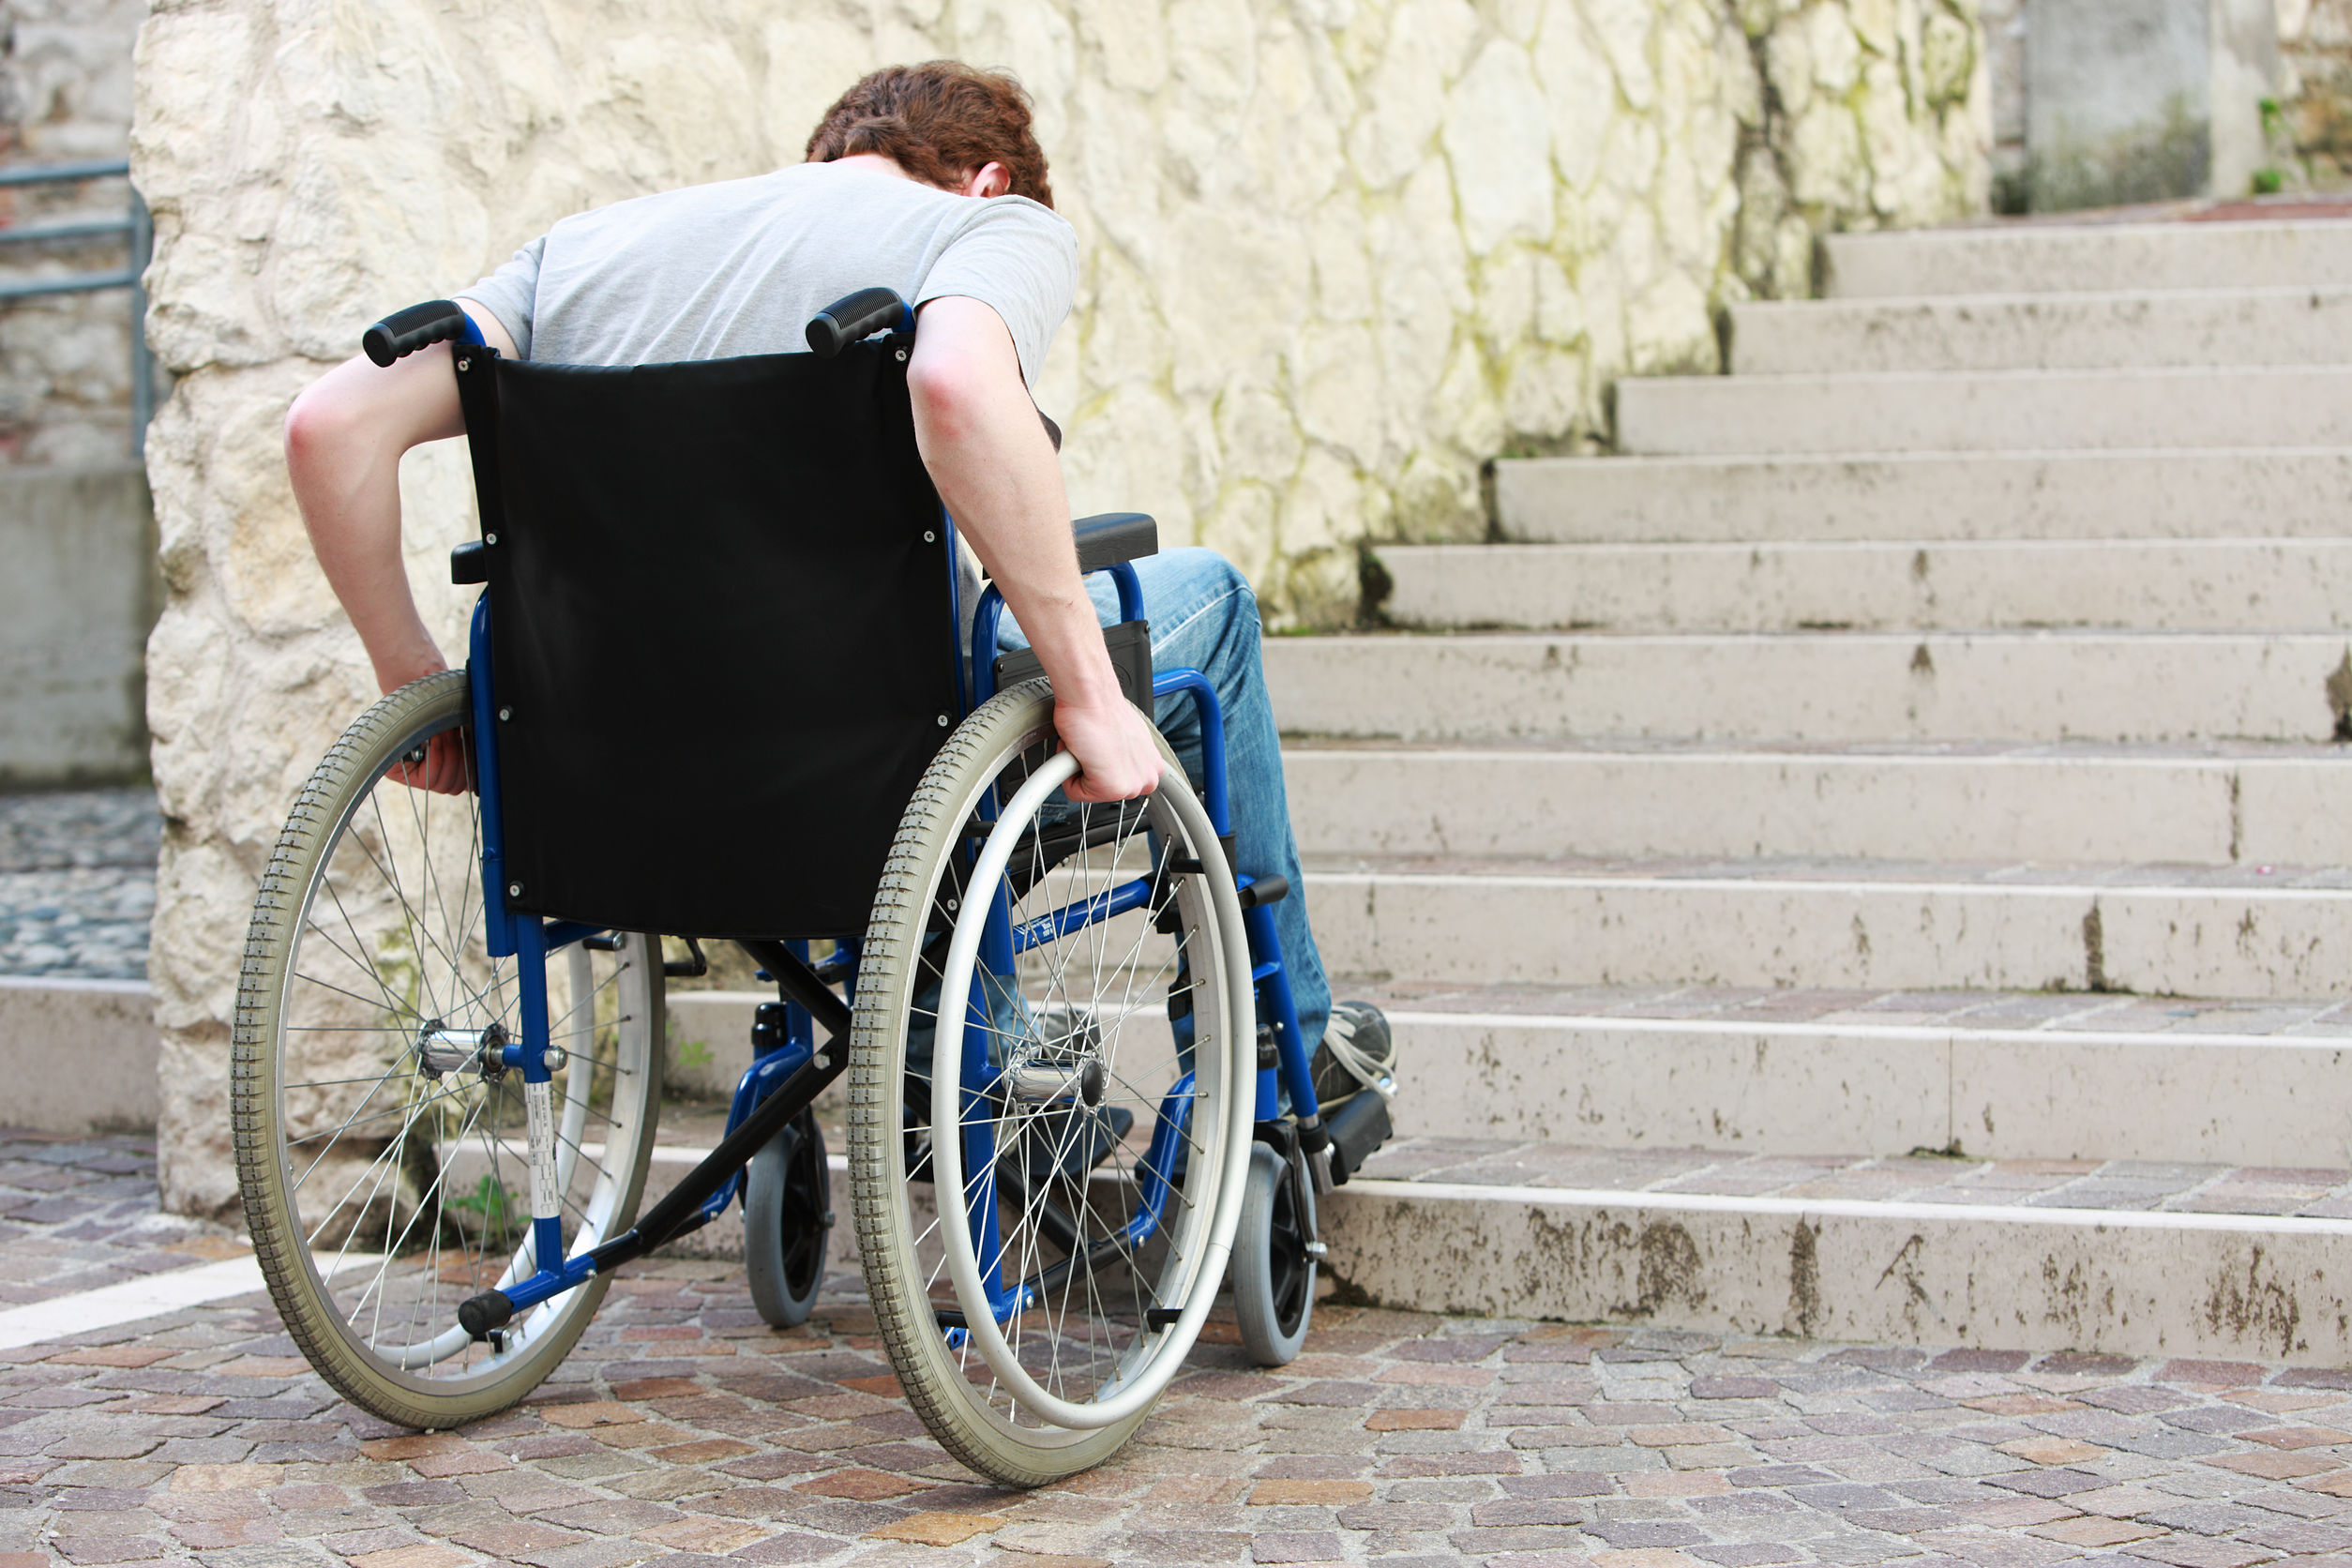 Man using wheelchair is blocked entrance due to stairs